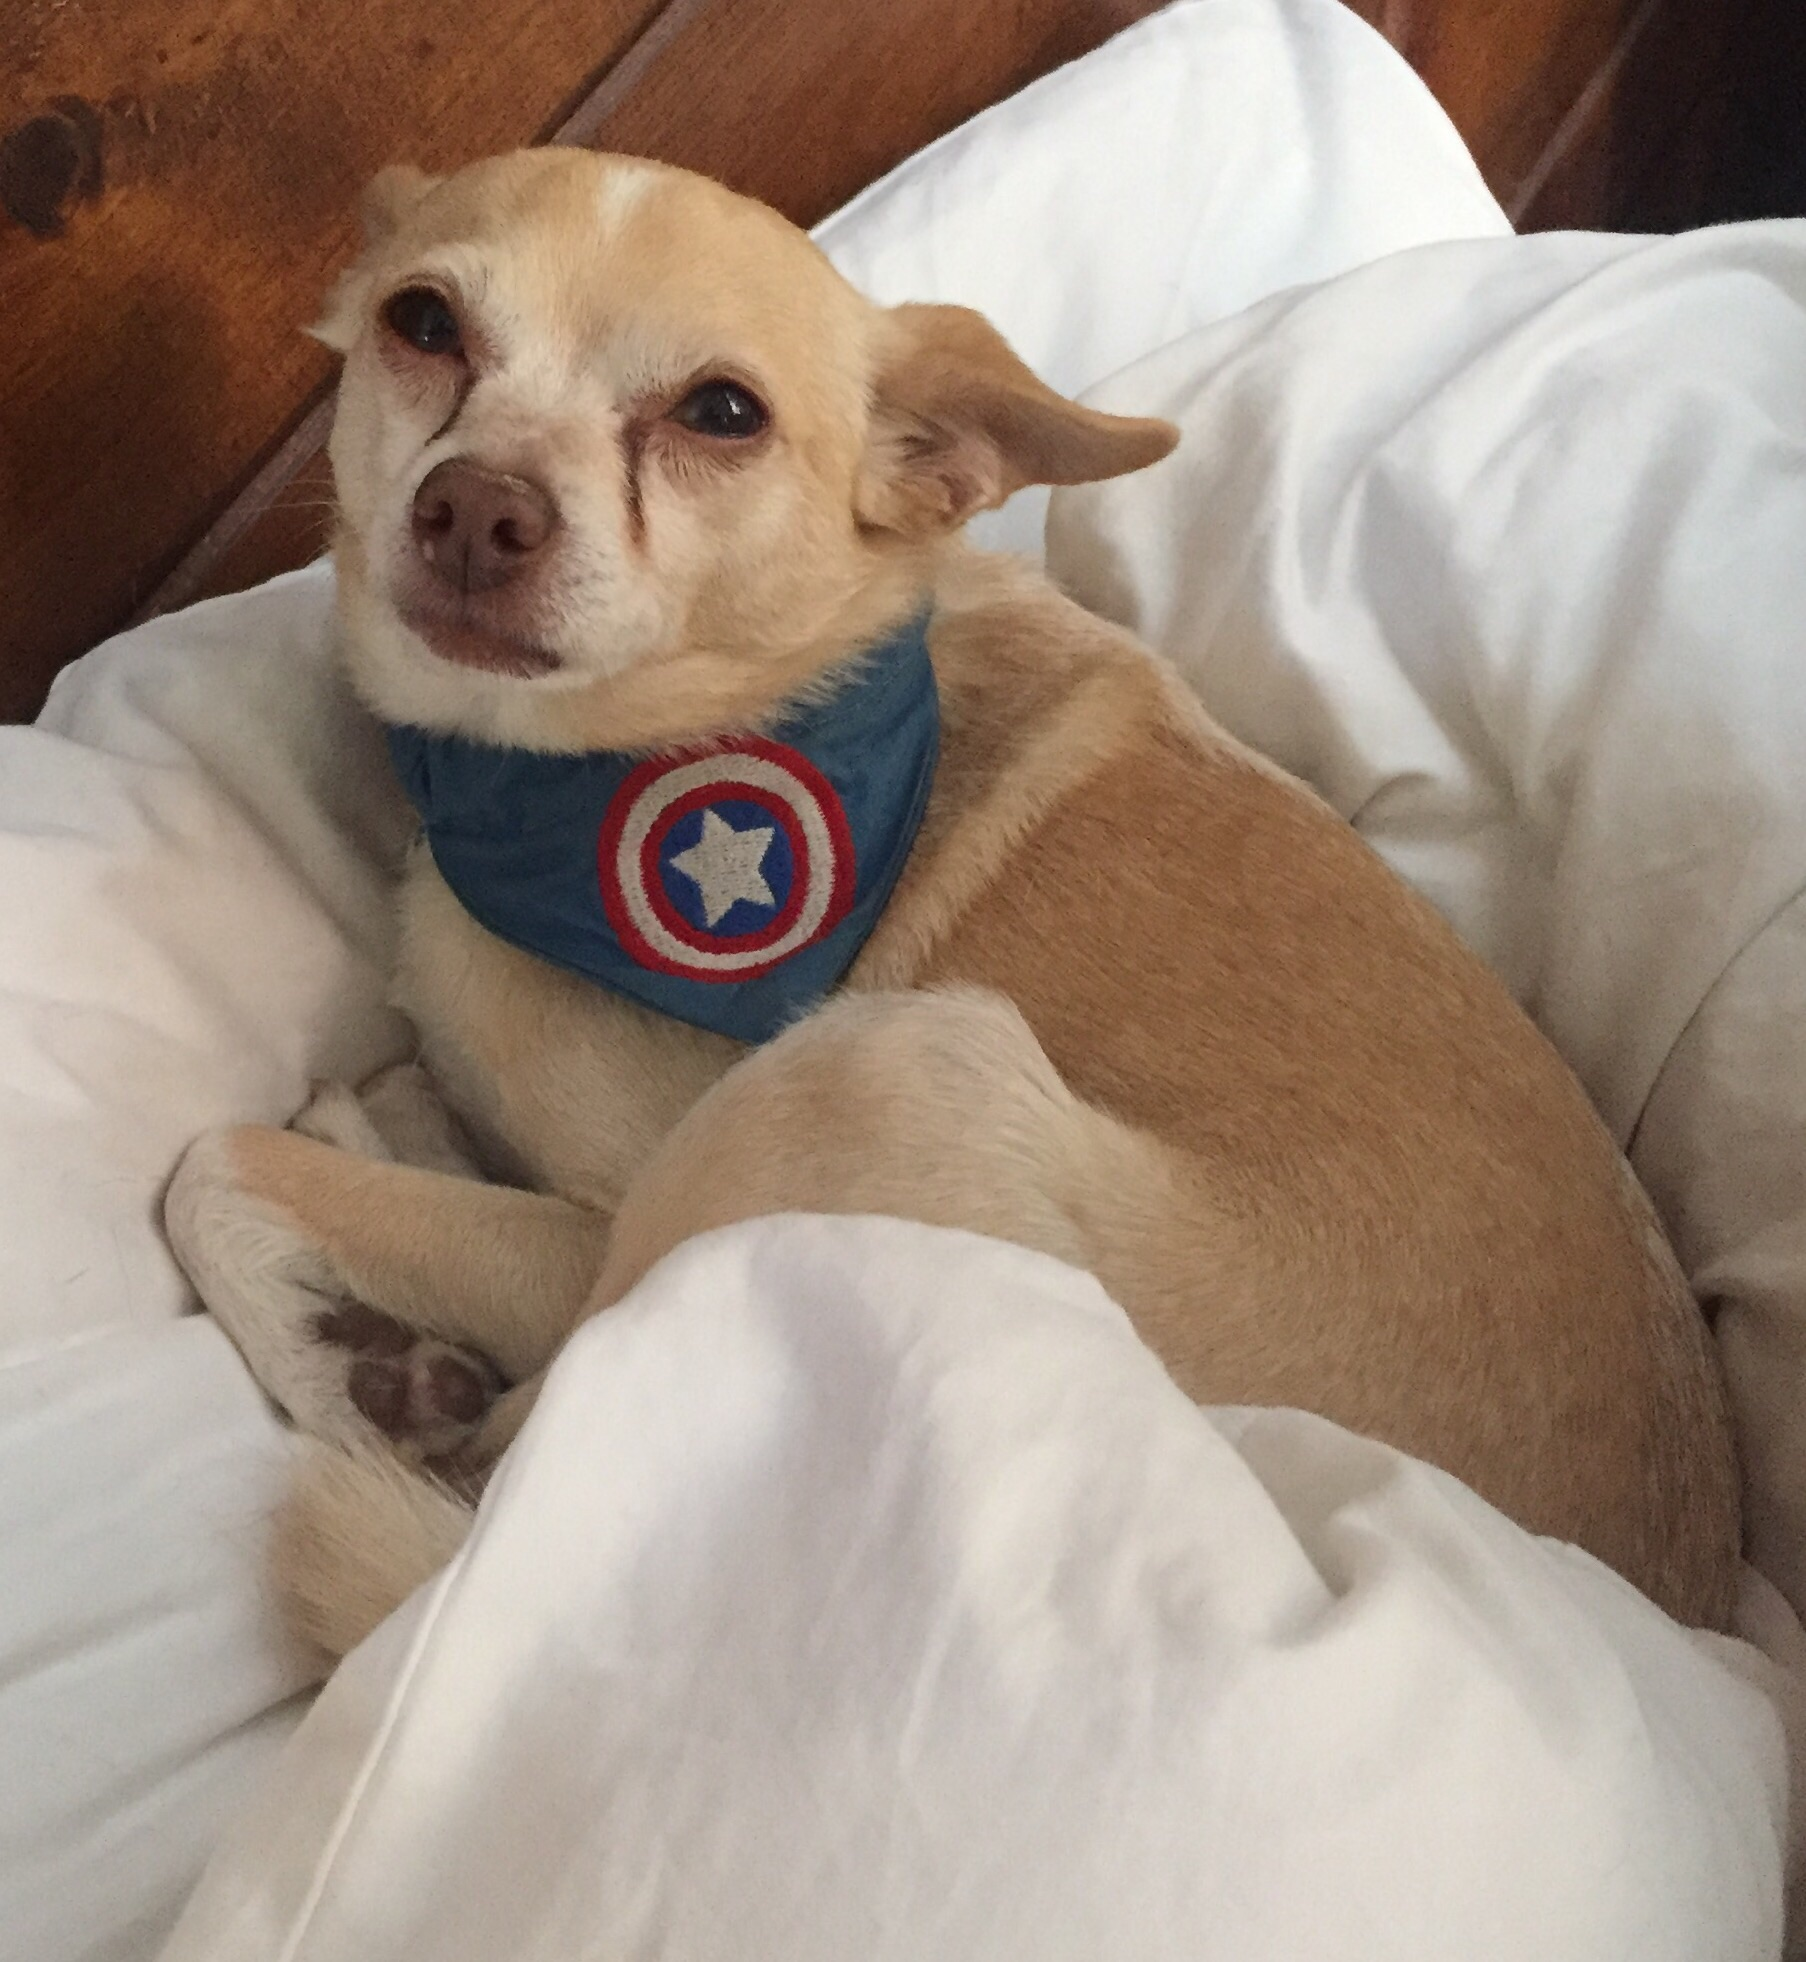 Captain America Avengers Superhero Dog And Cat Bandana